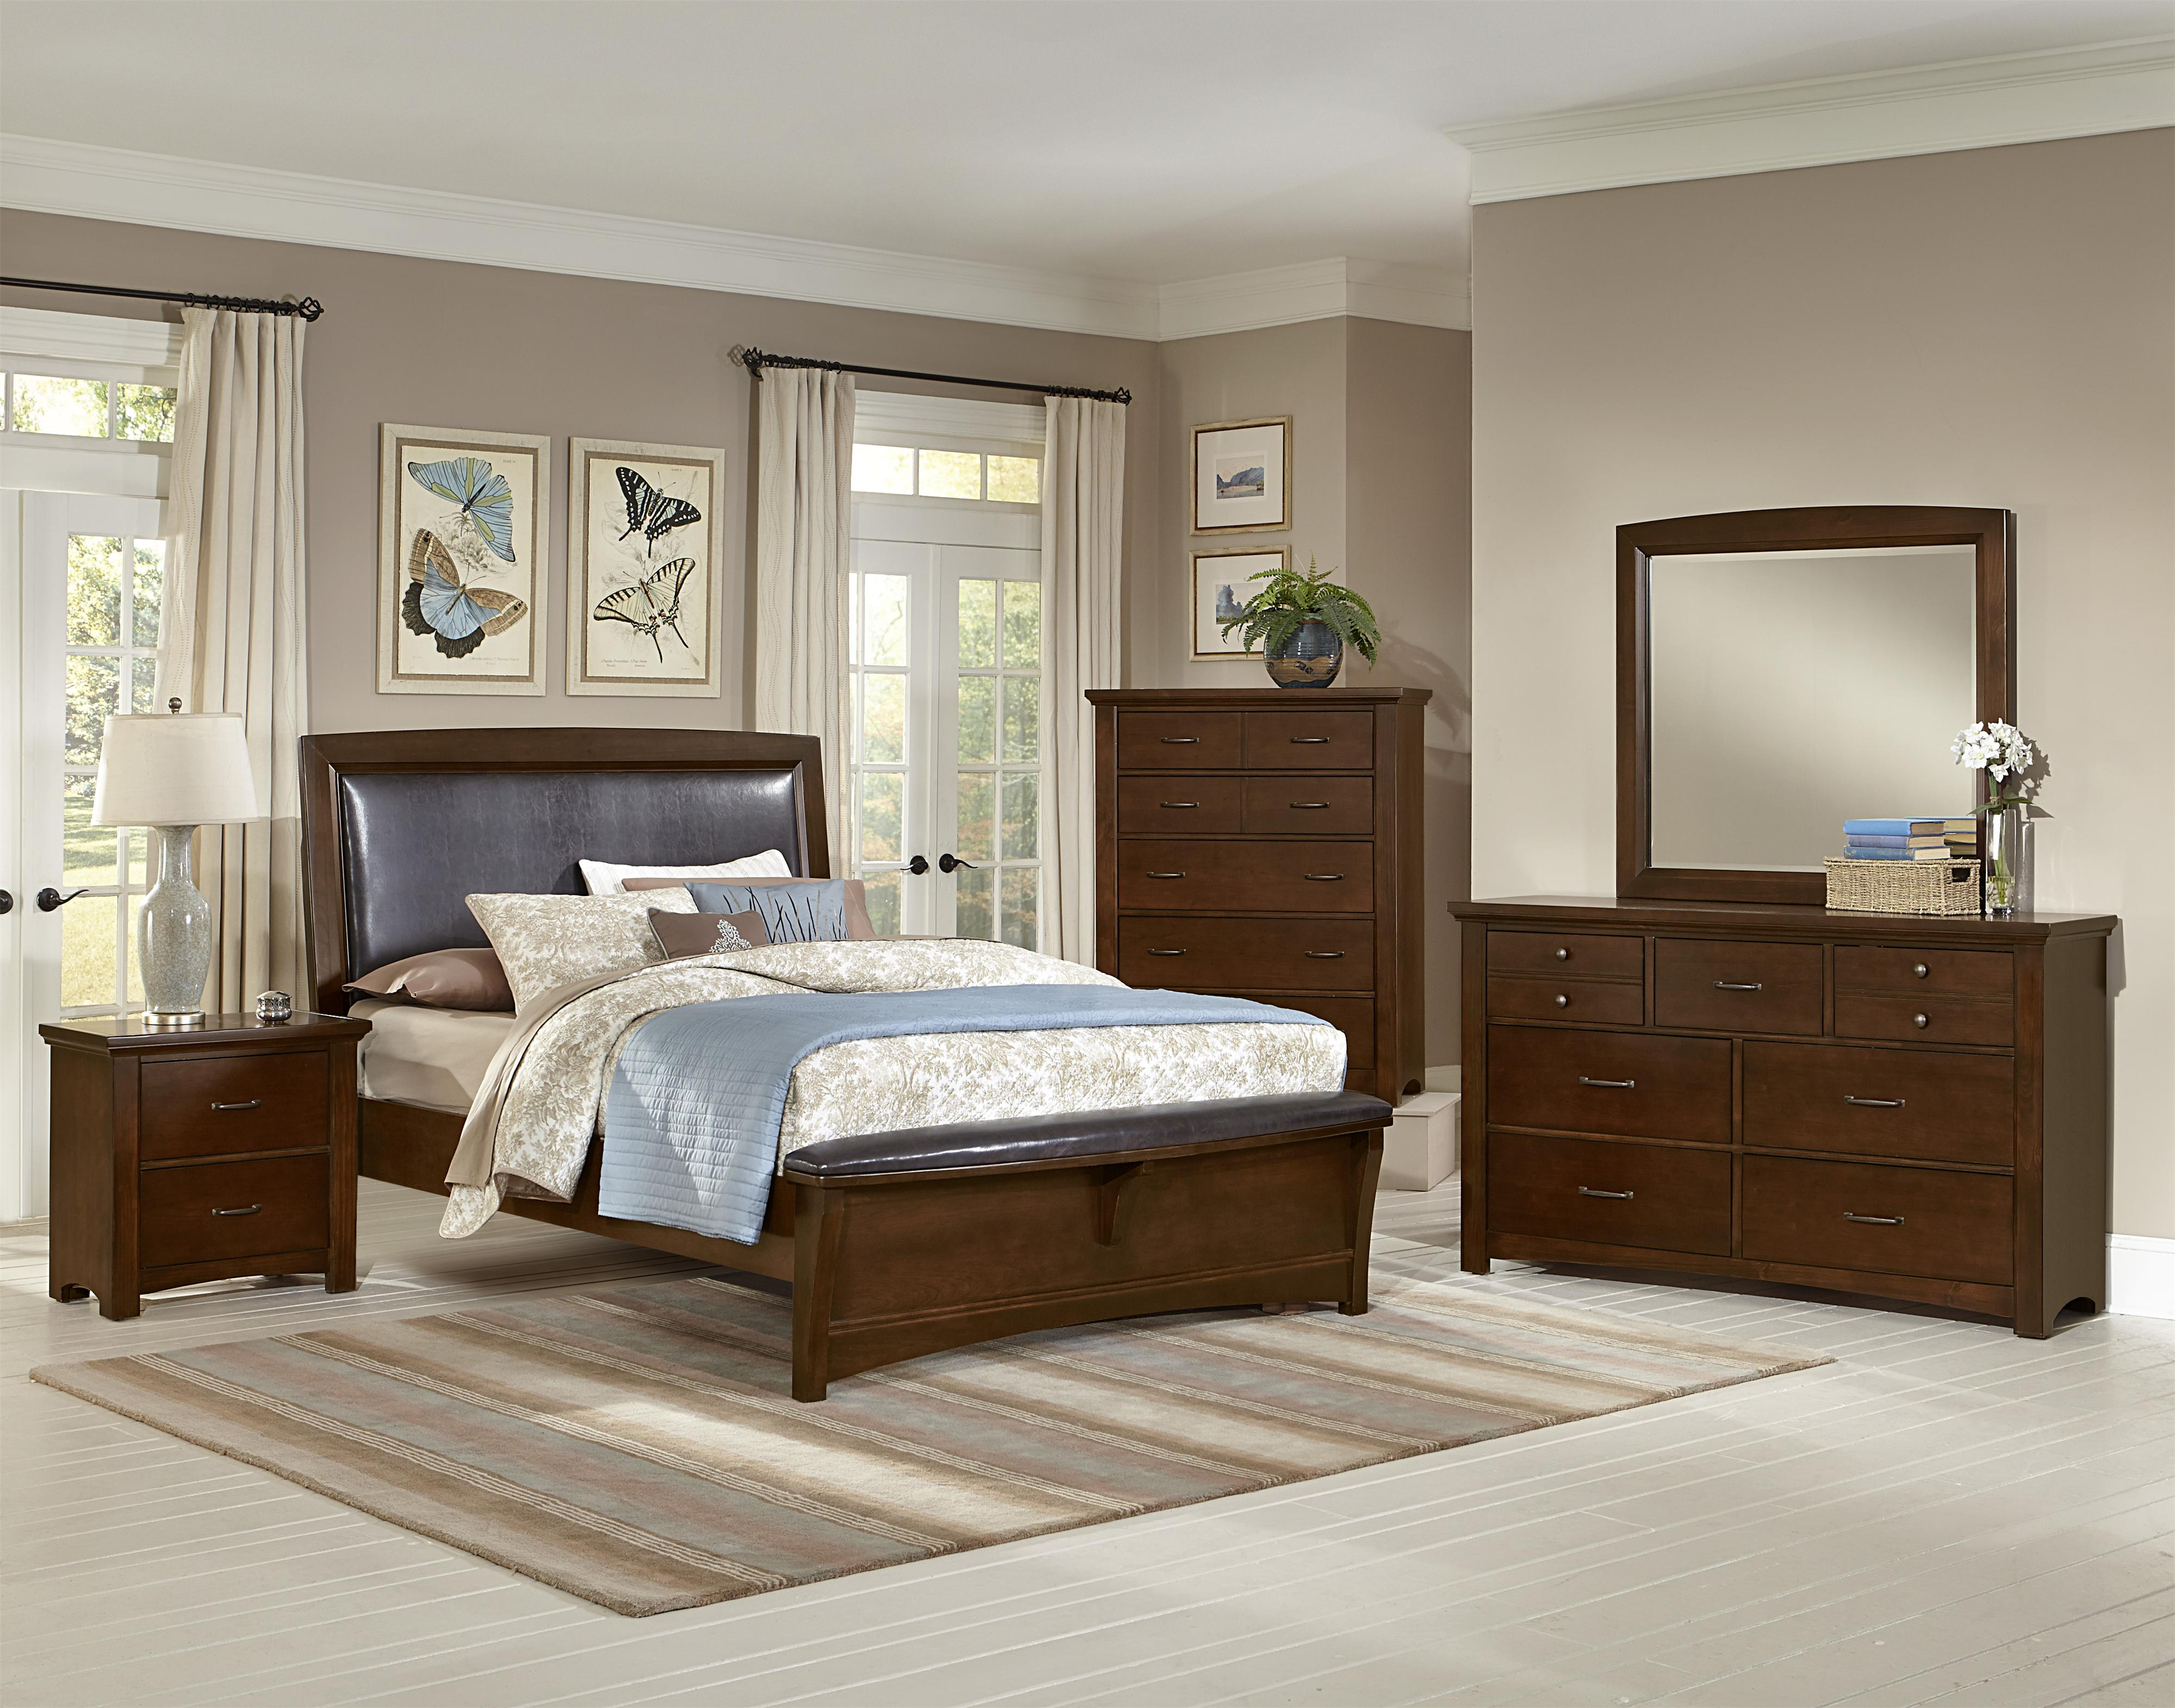 Vaughan Bassett Transitions Queen Bedroom Group - Item Number: BB68 Q Bedroom Group 4